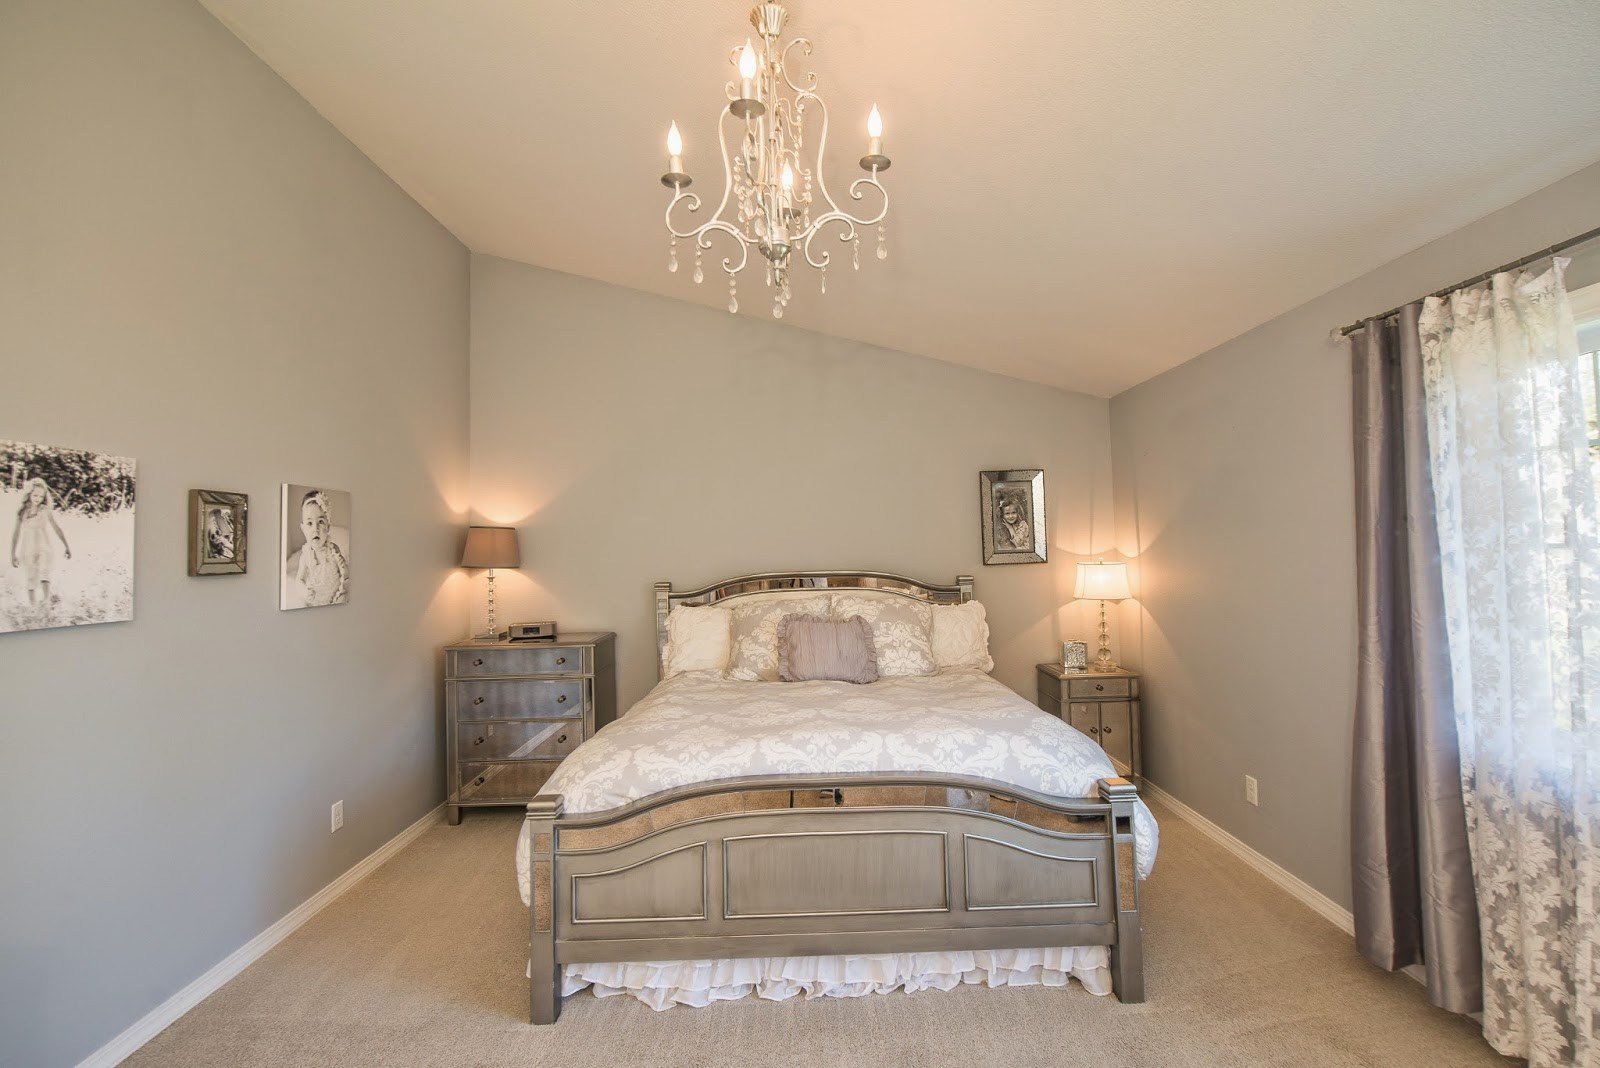 Best Pier One Bedroom Sets 28 Images Pier 1 Bedroom Furniture With Pictures